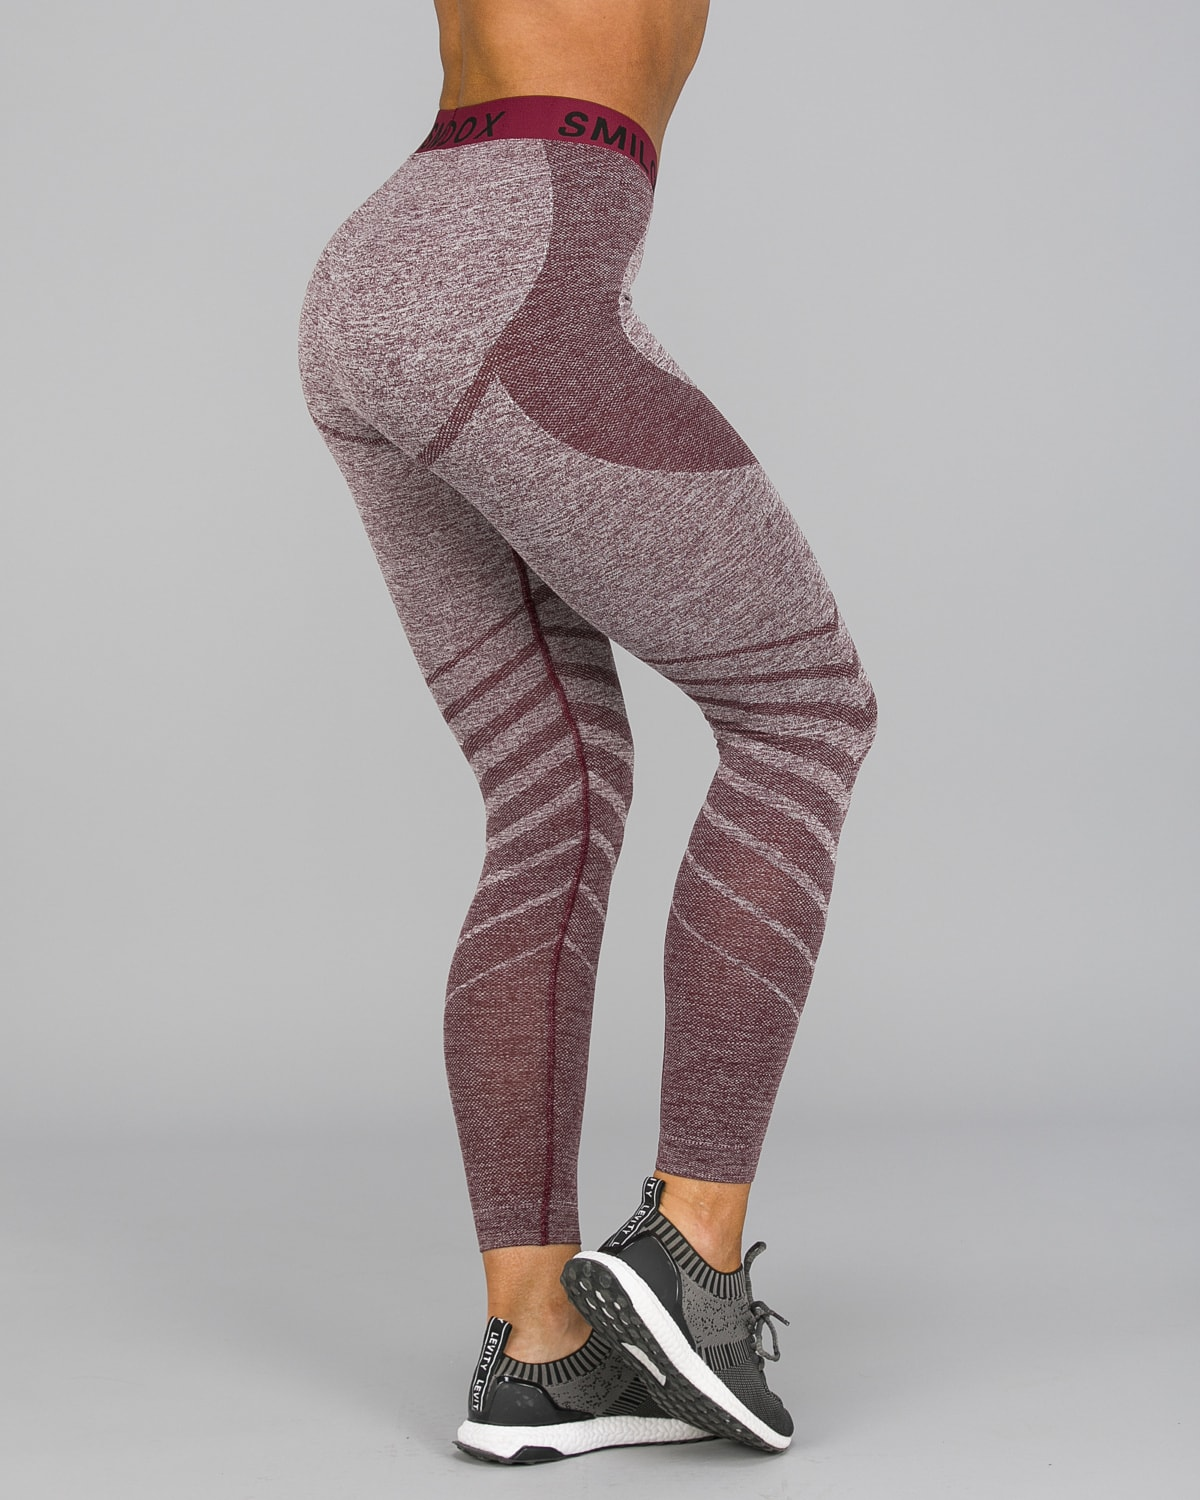 Smilodox – Vira Leggings – Bordeaux9